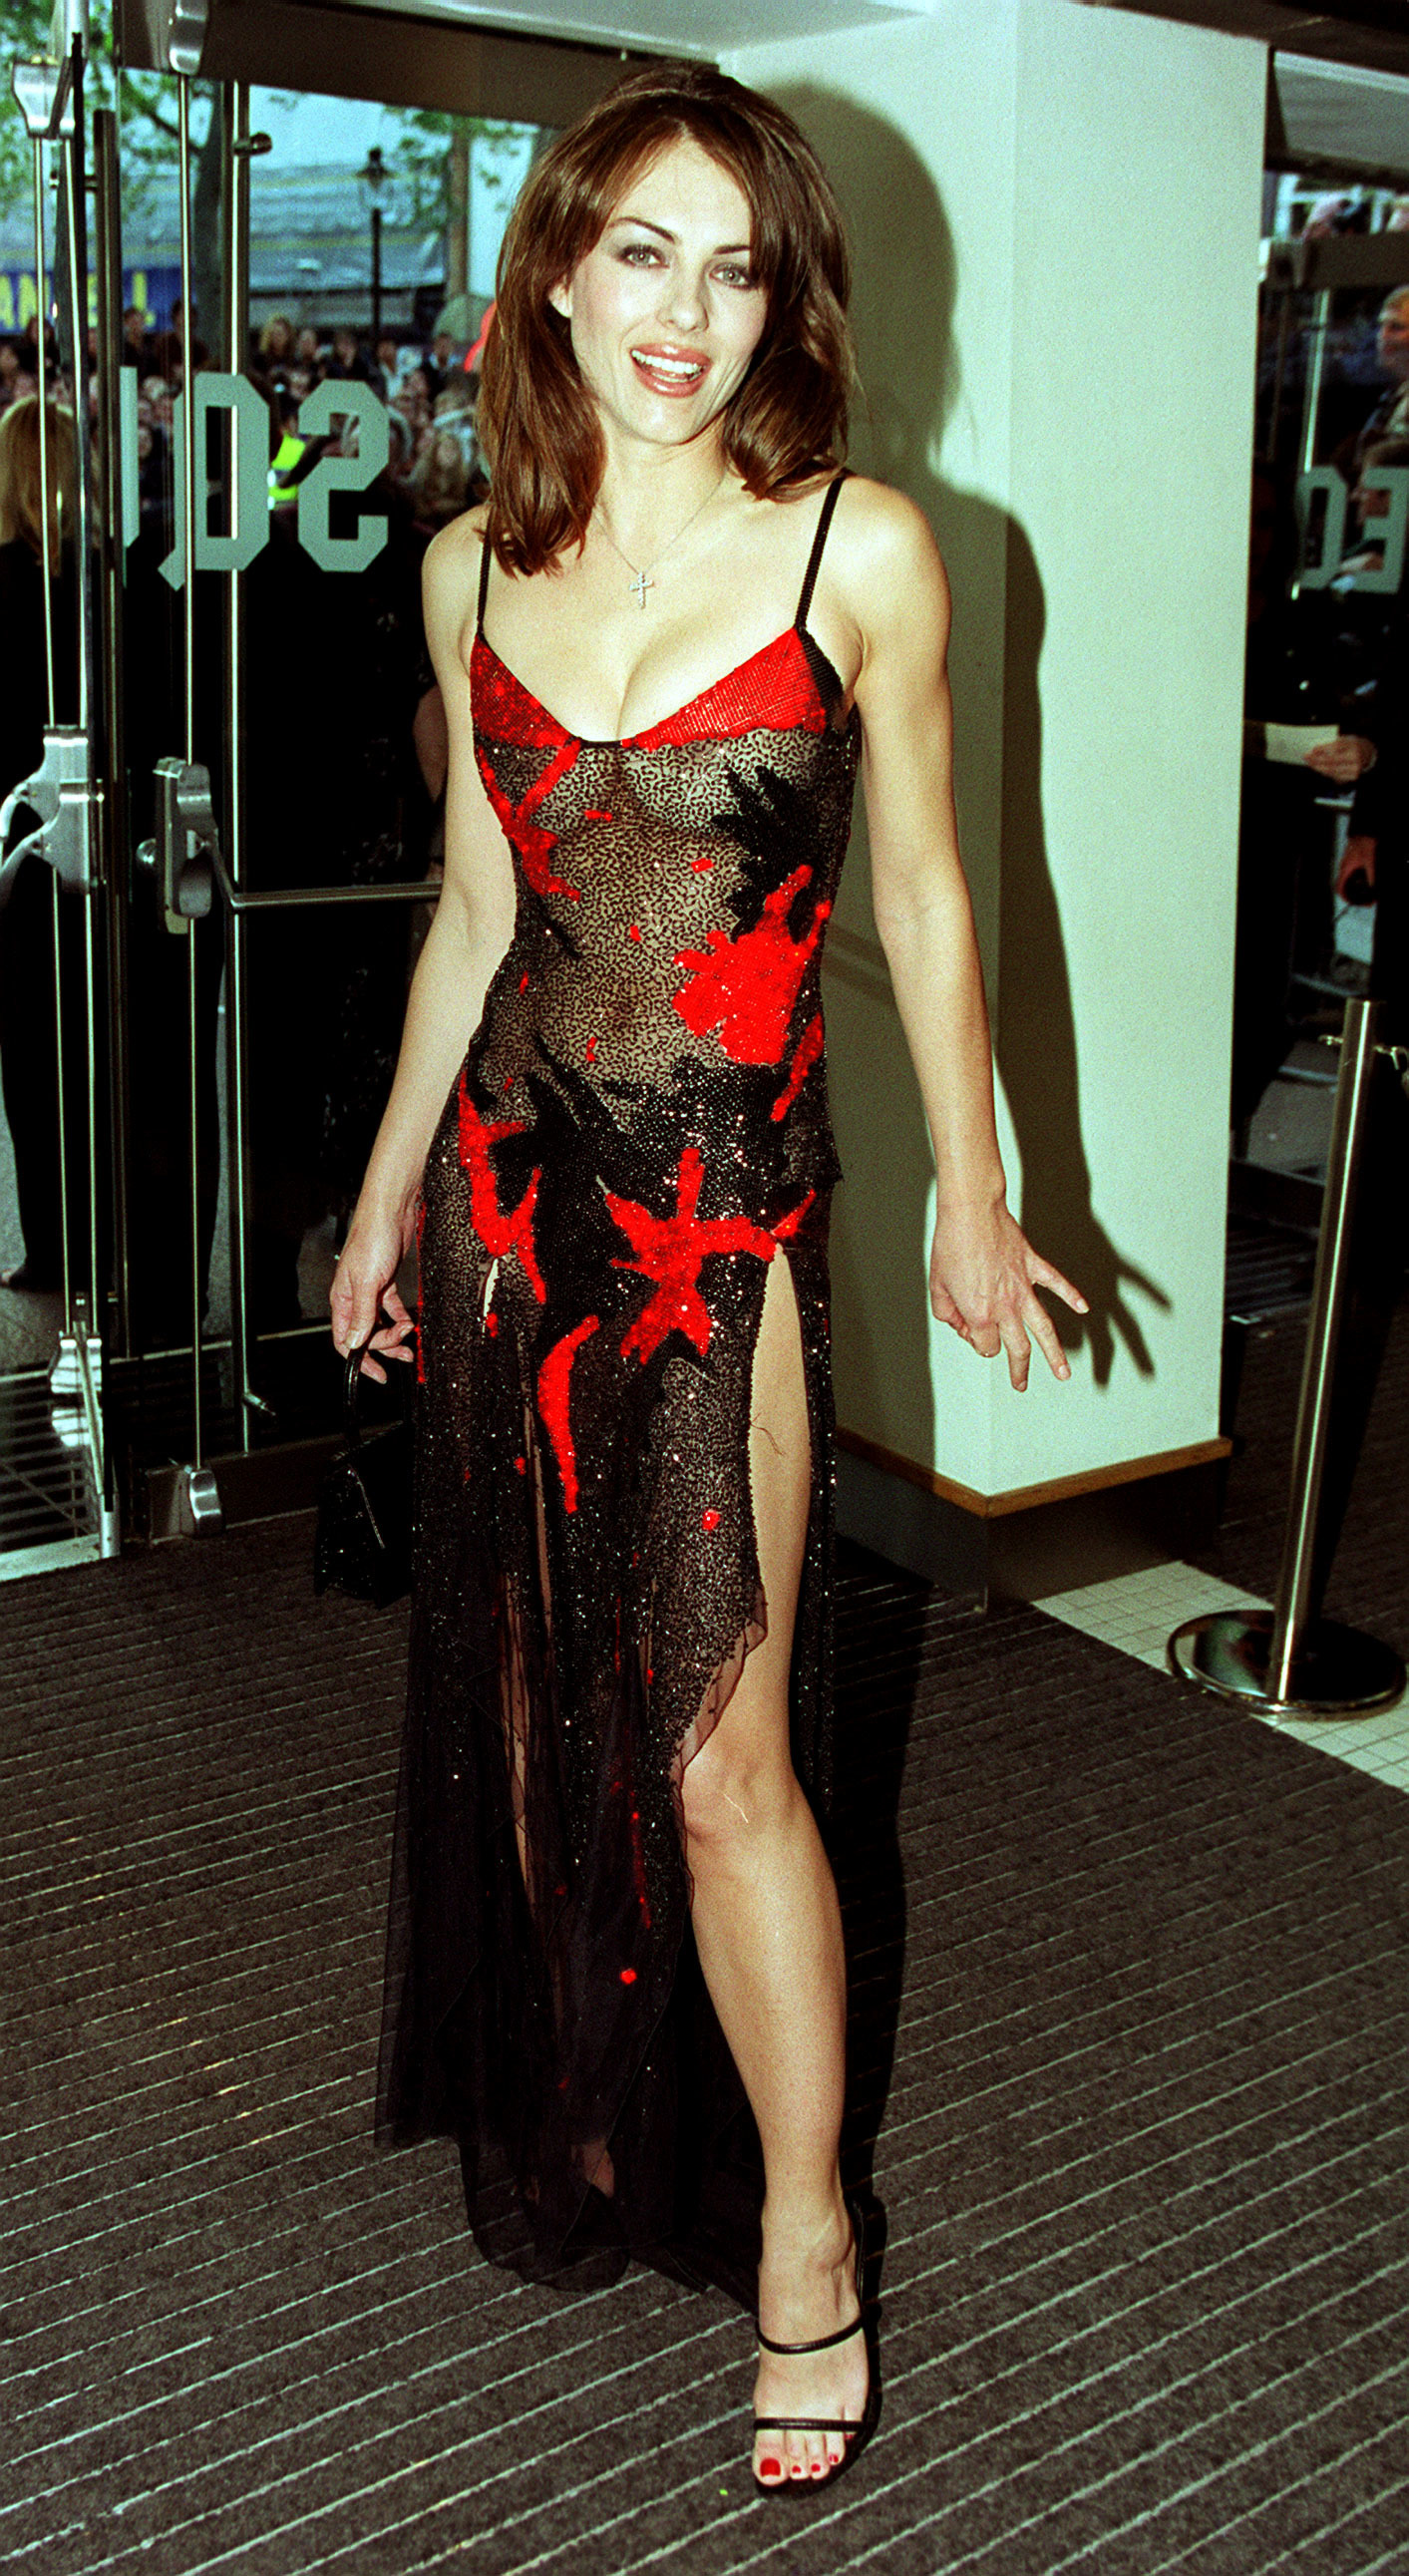 """Model and film star, Elizabeth Hurley, arriving for the World Premiere of """"Notting Hill"""" wearing a Versace dress, at the Odeon Leicester Square."""